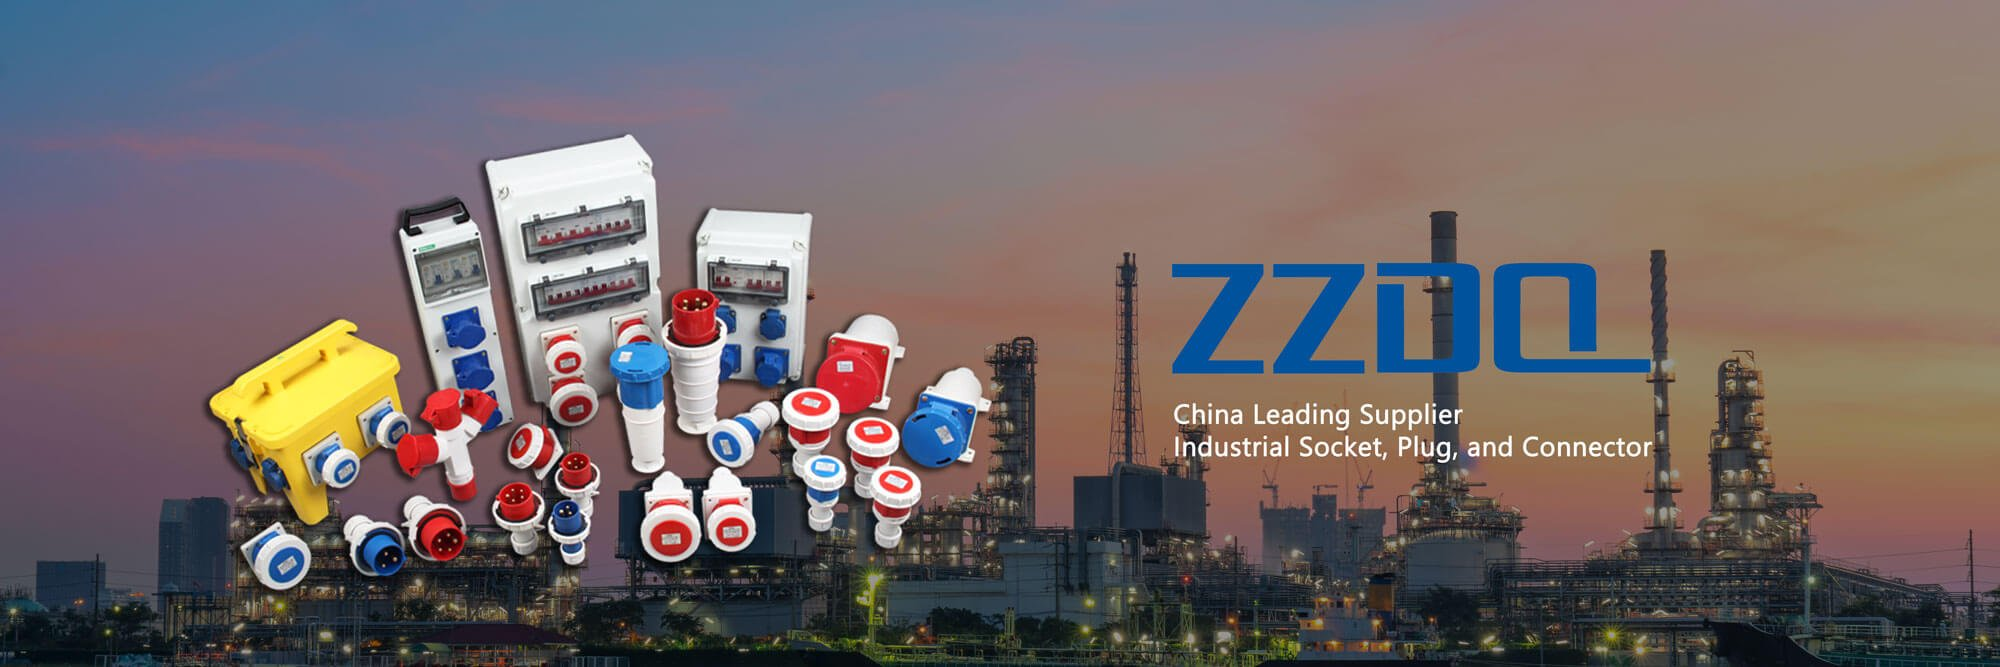 ZZDQ is a Chinese supplier of industrial socket and plug